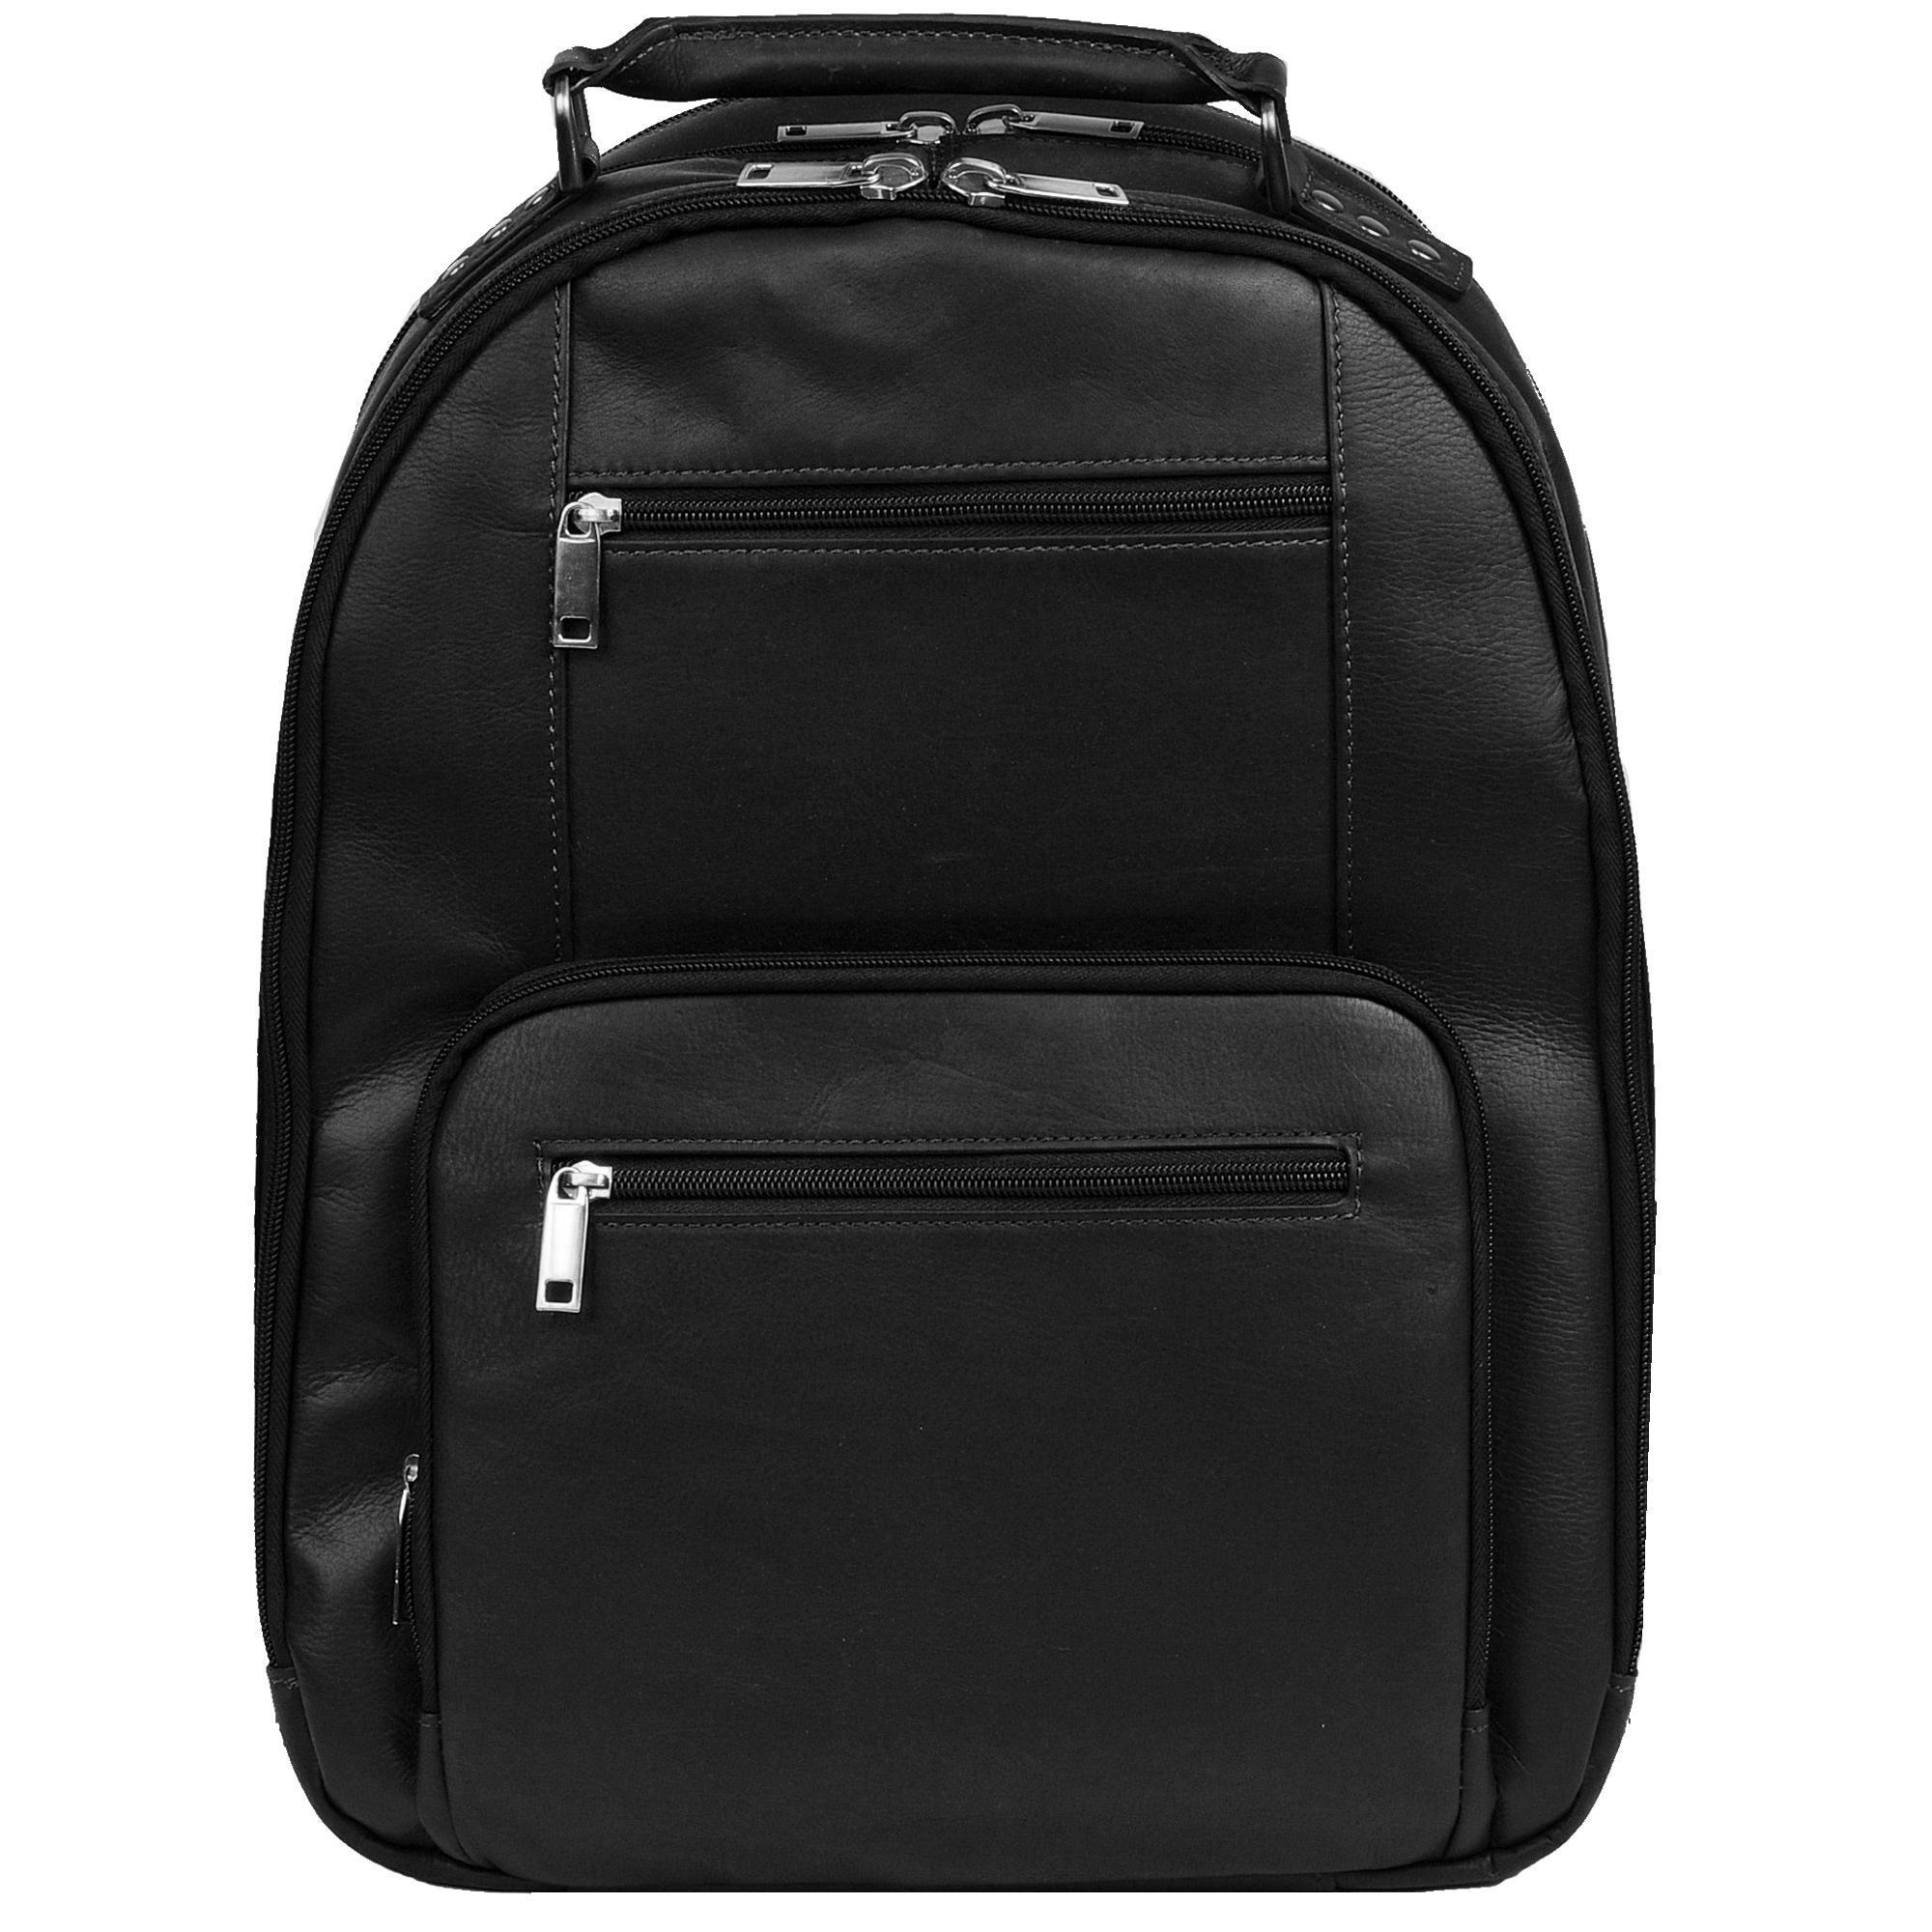 Wilsons leather Vacqueta Leather Laptop Backpack in Black | Lyst